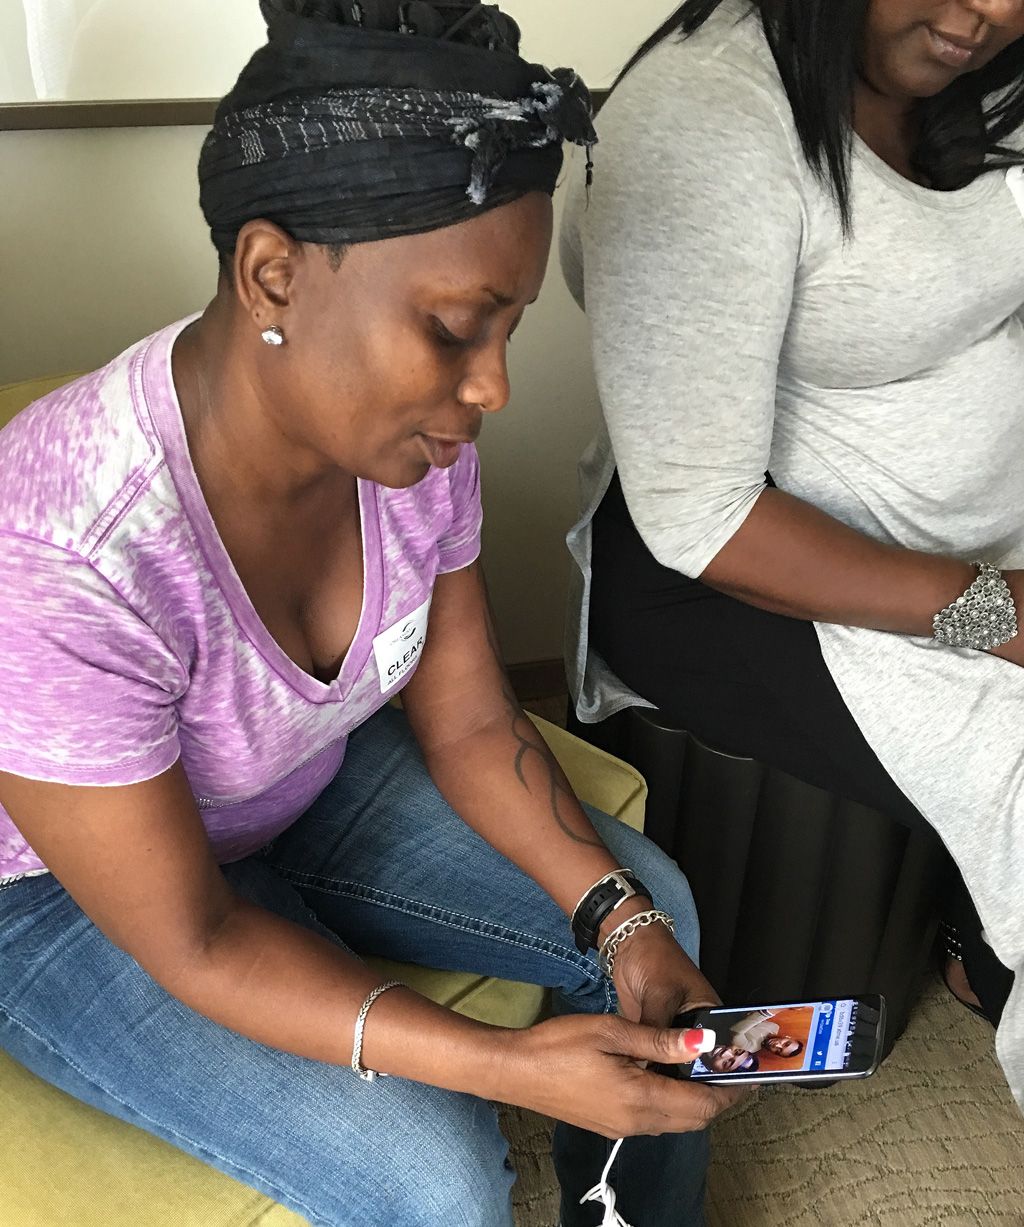 Mina Justice speaks to a reporter, discussing texting with her son Eddie Justice who was in a bathroom at Pulse during the shooting. (AAP)